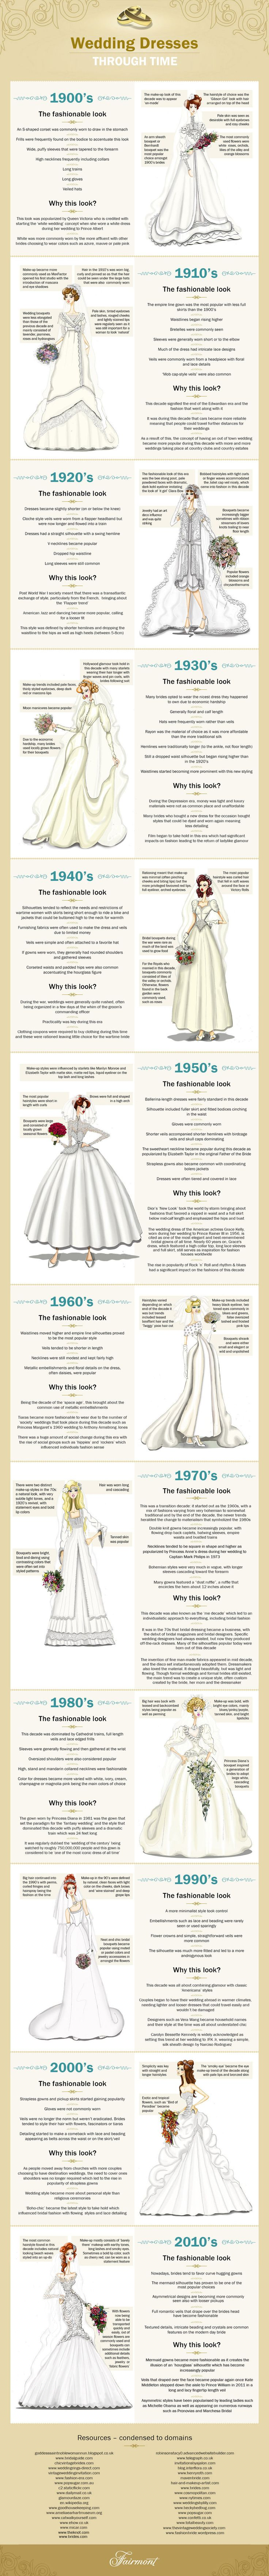 Over the past 100 years, everything about a wedding dress has changed.